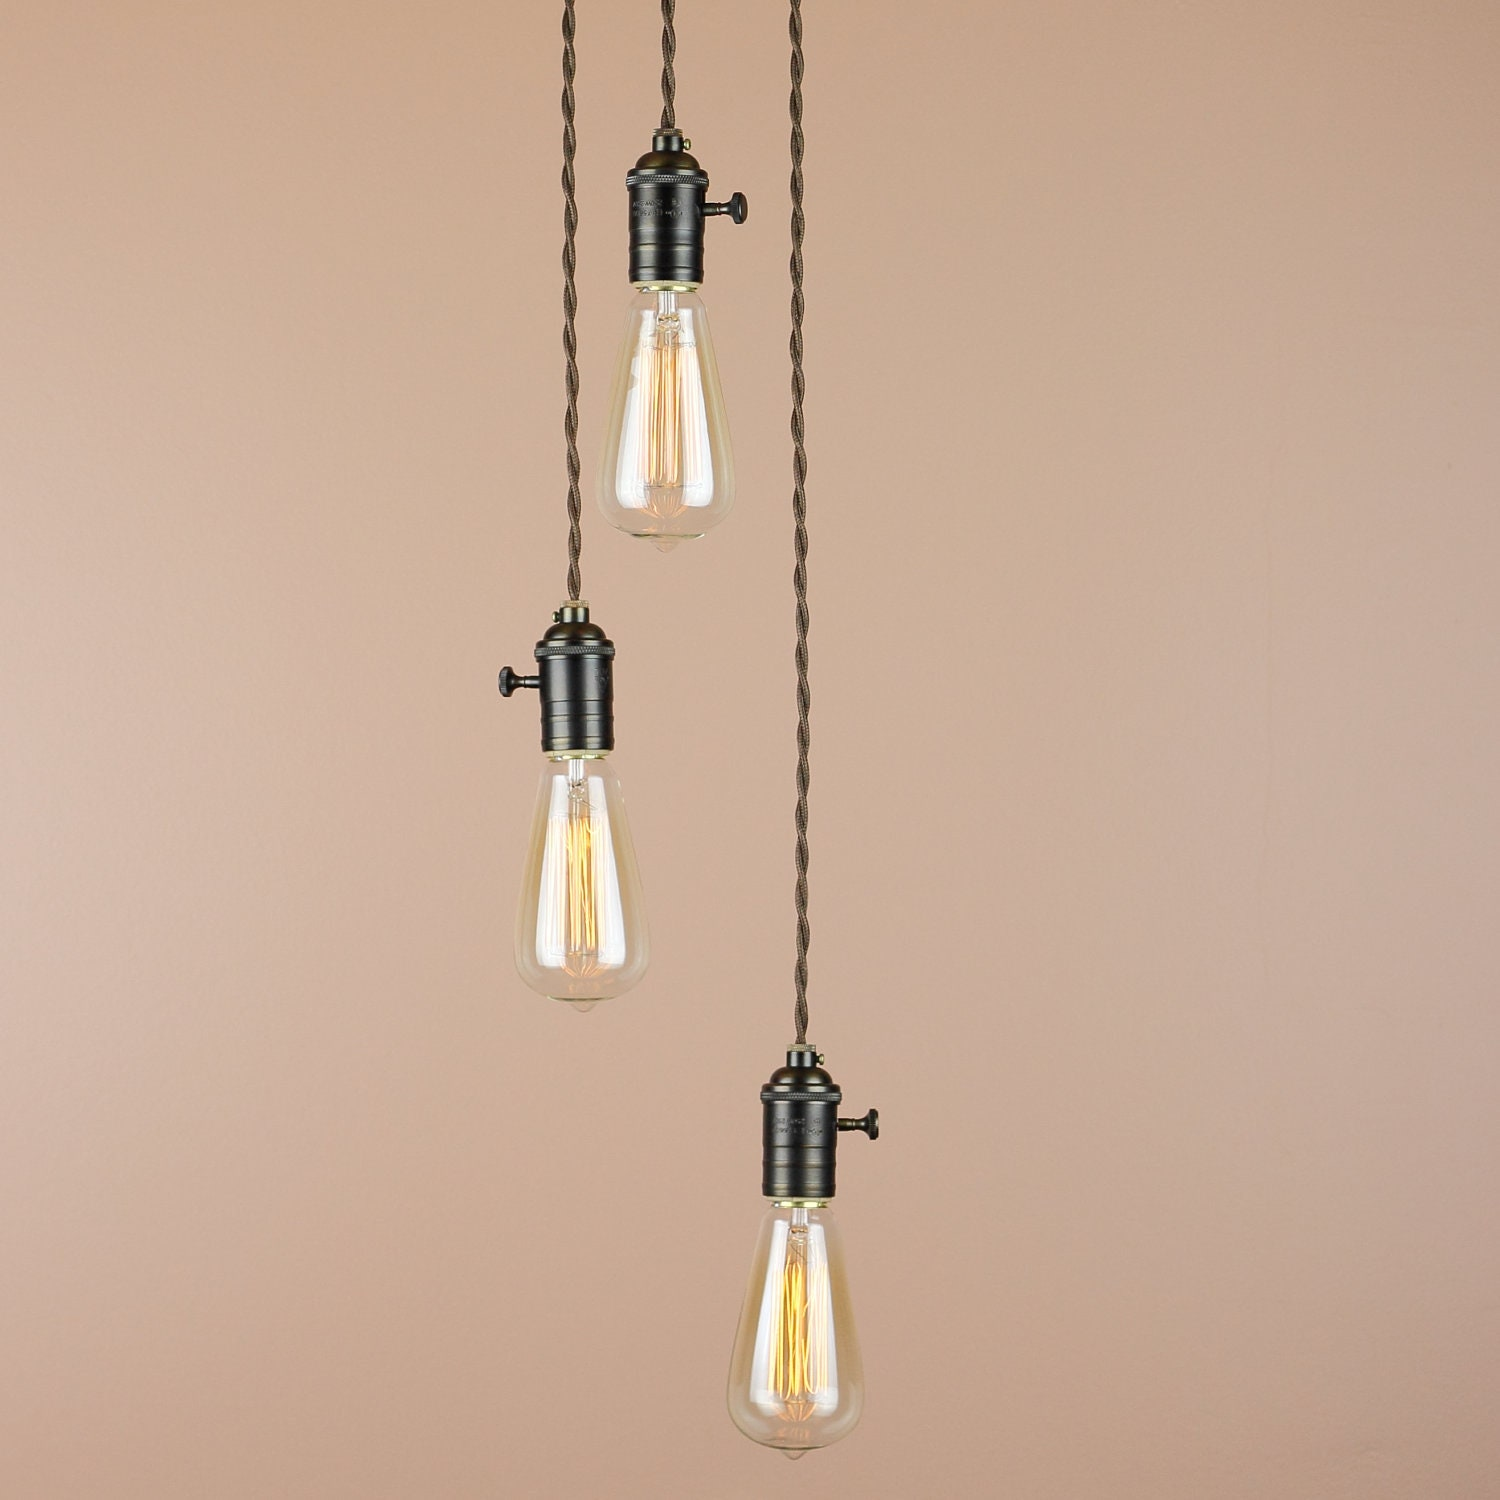 pendant vintage lamp head retro itm single light industrial rope edison ceiling